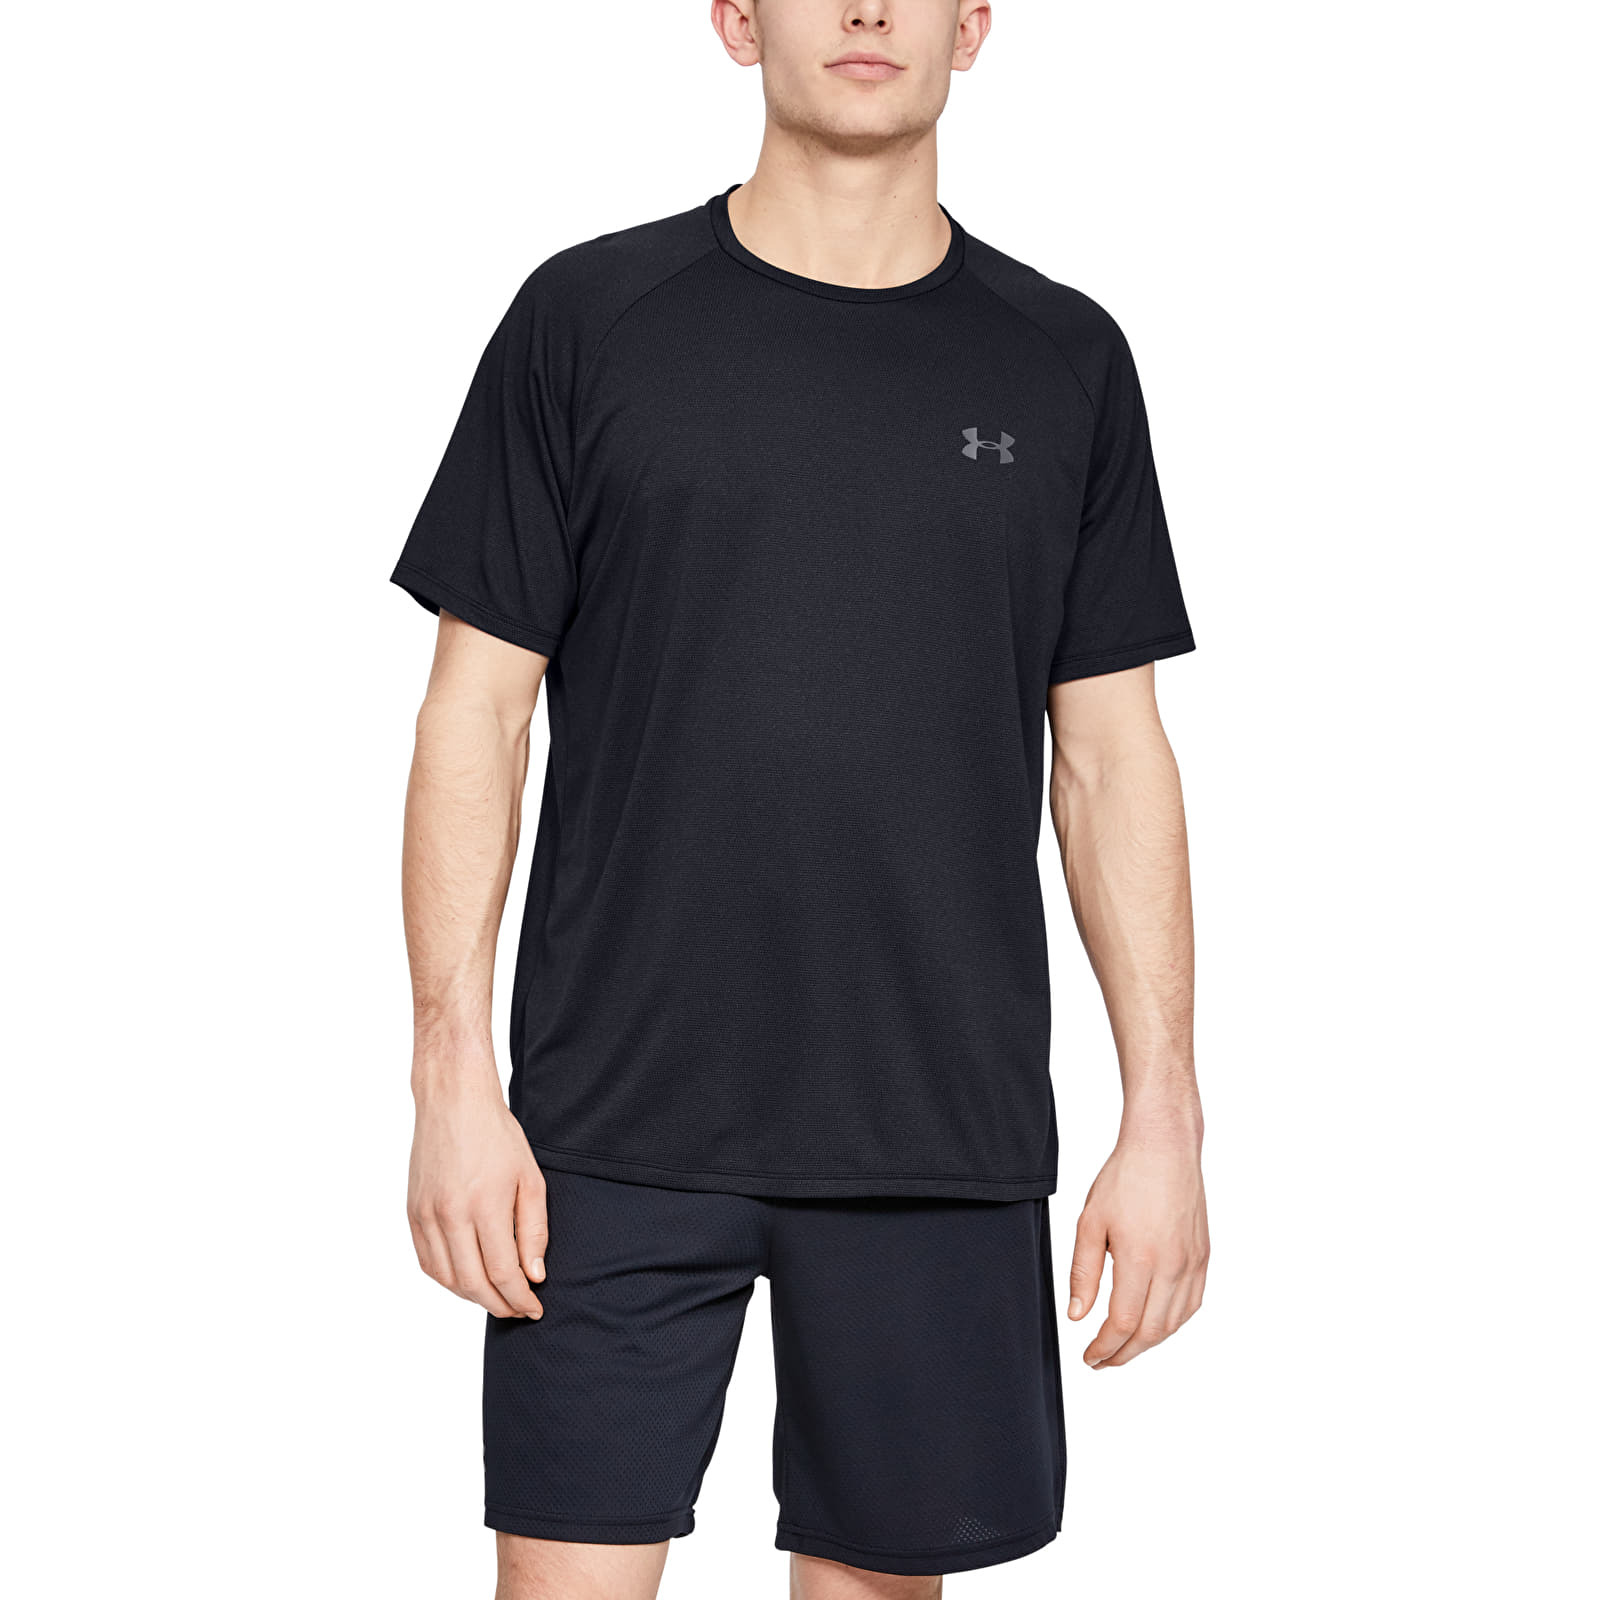 Under Armour Tech 2.0 SS Tee Novelty Black/ Pitch Gray S